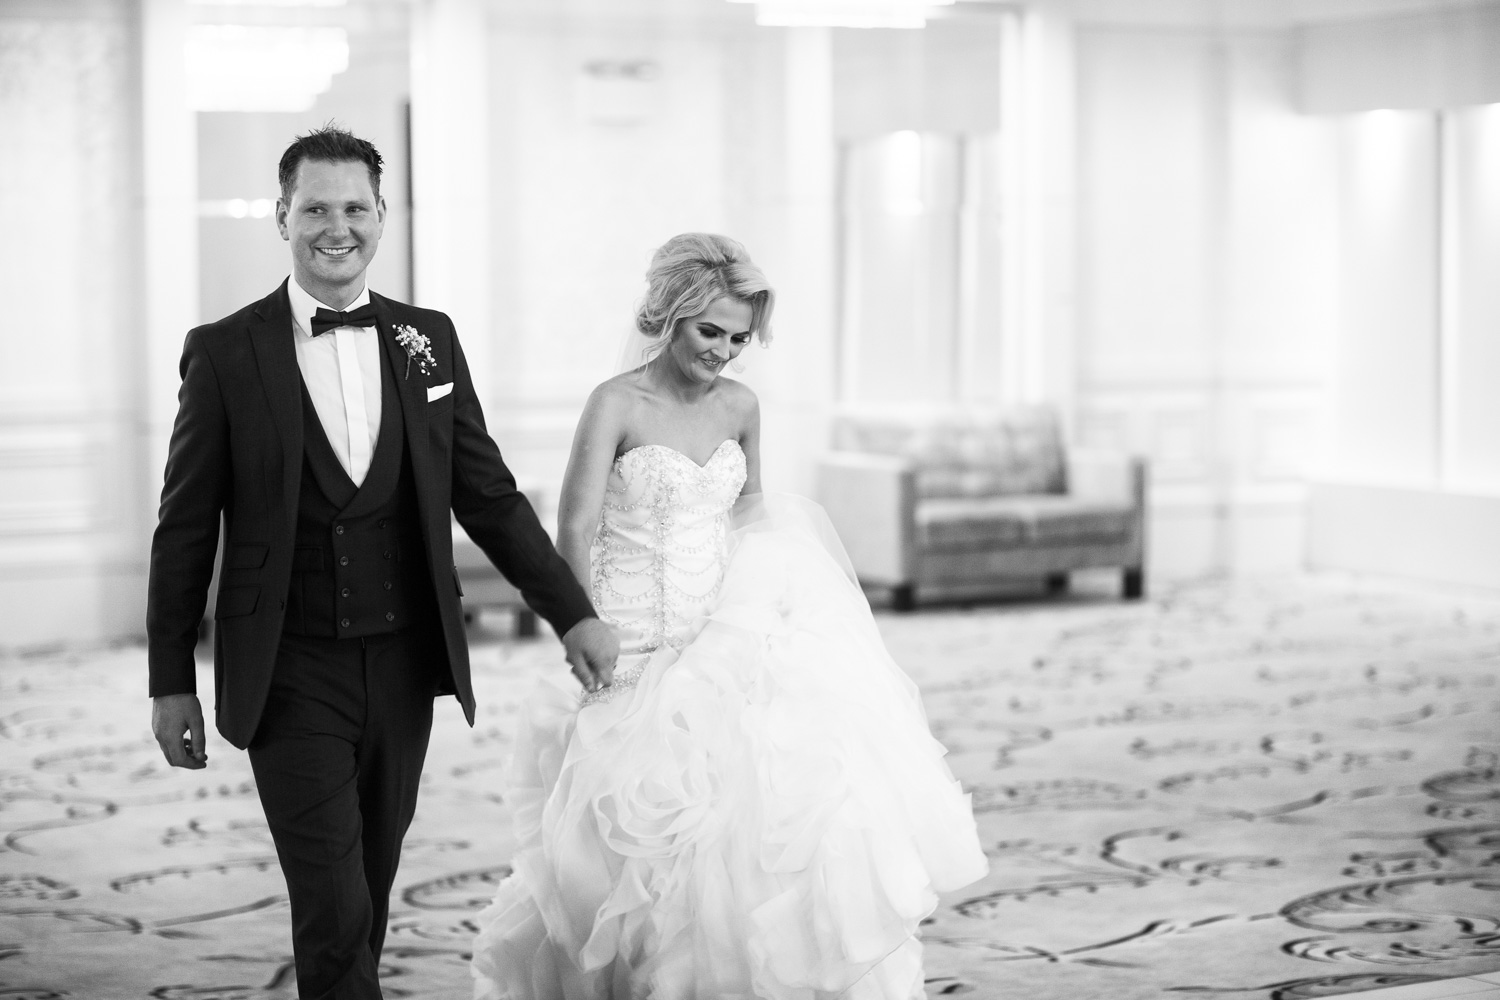 Mark_Barnes_wedding_photographer_Northern_Ireland_Wedding_photography_Carlingford_Four_Seasons_Wedding-47.jpg